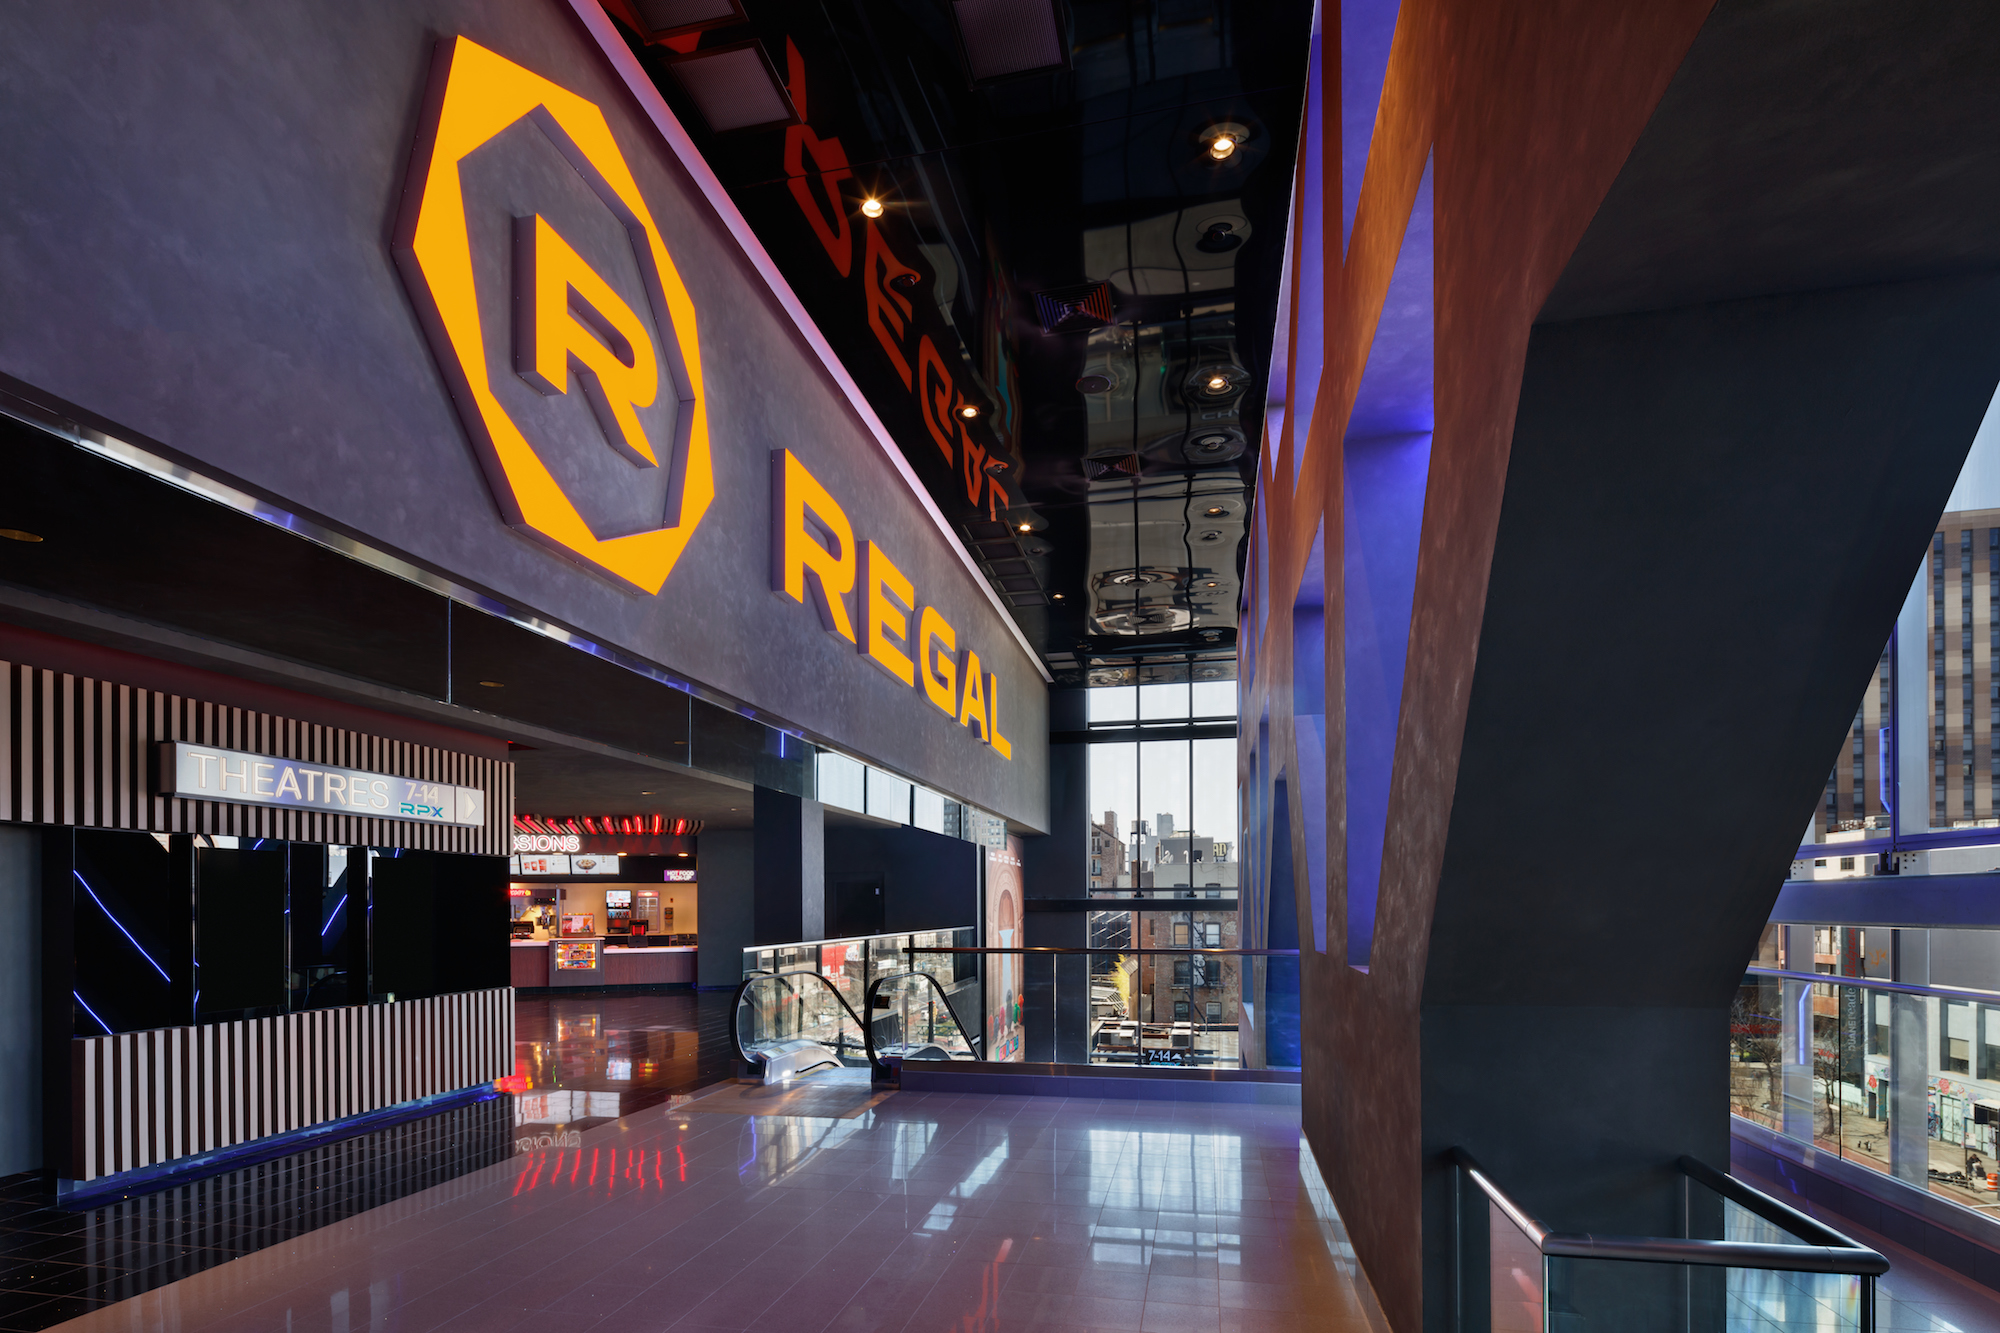 14-screen Regal theater opens at Essex Crossing on the Lower